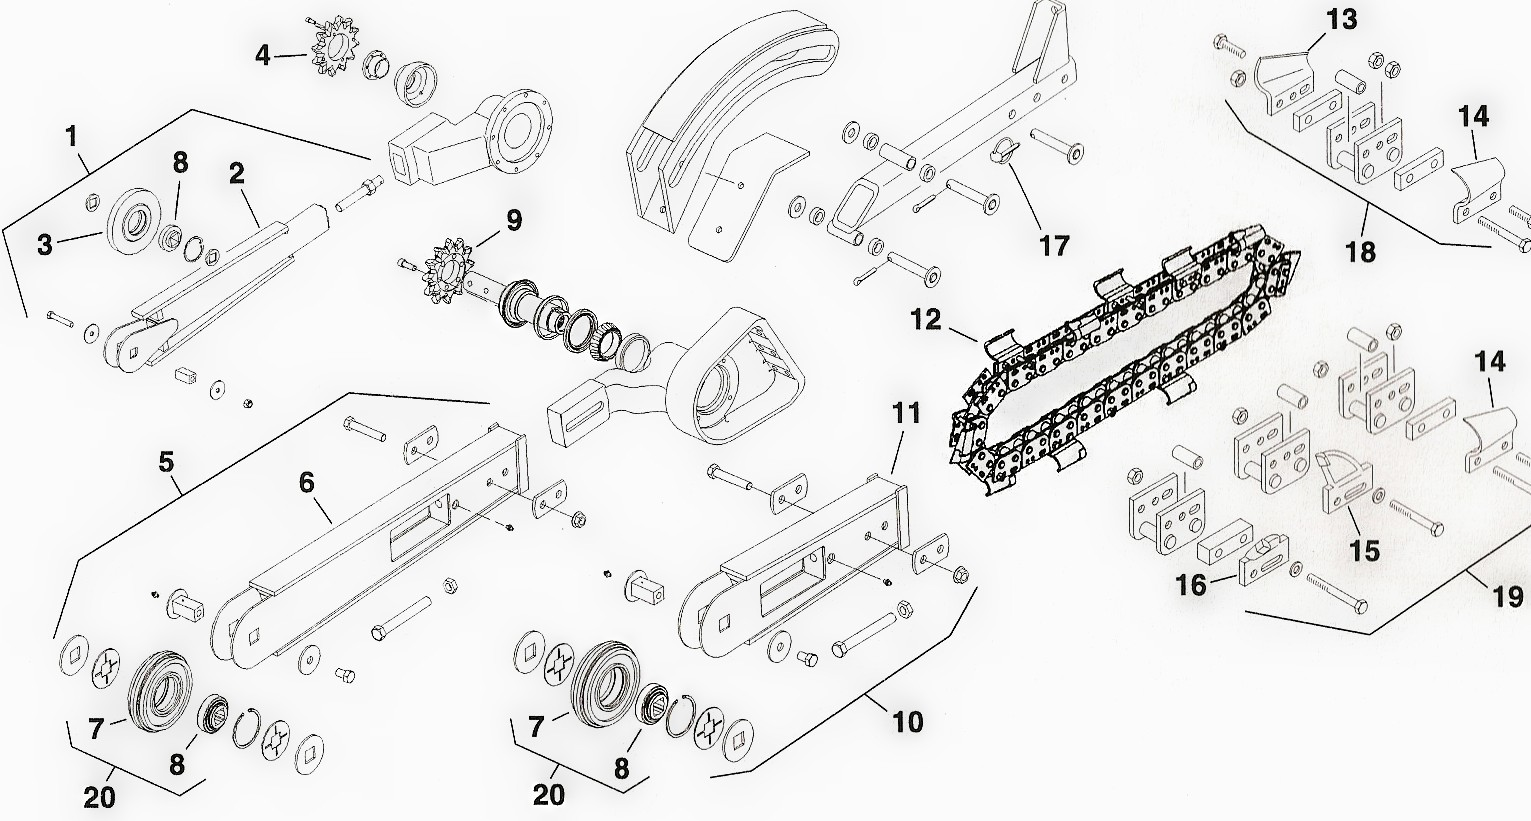 Toro Dingo Trencher Parts Diagram